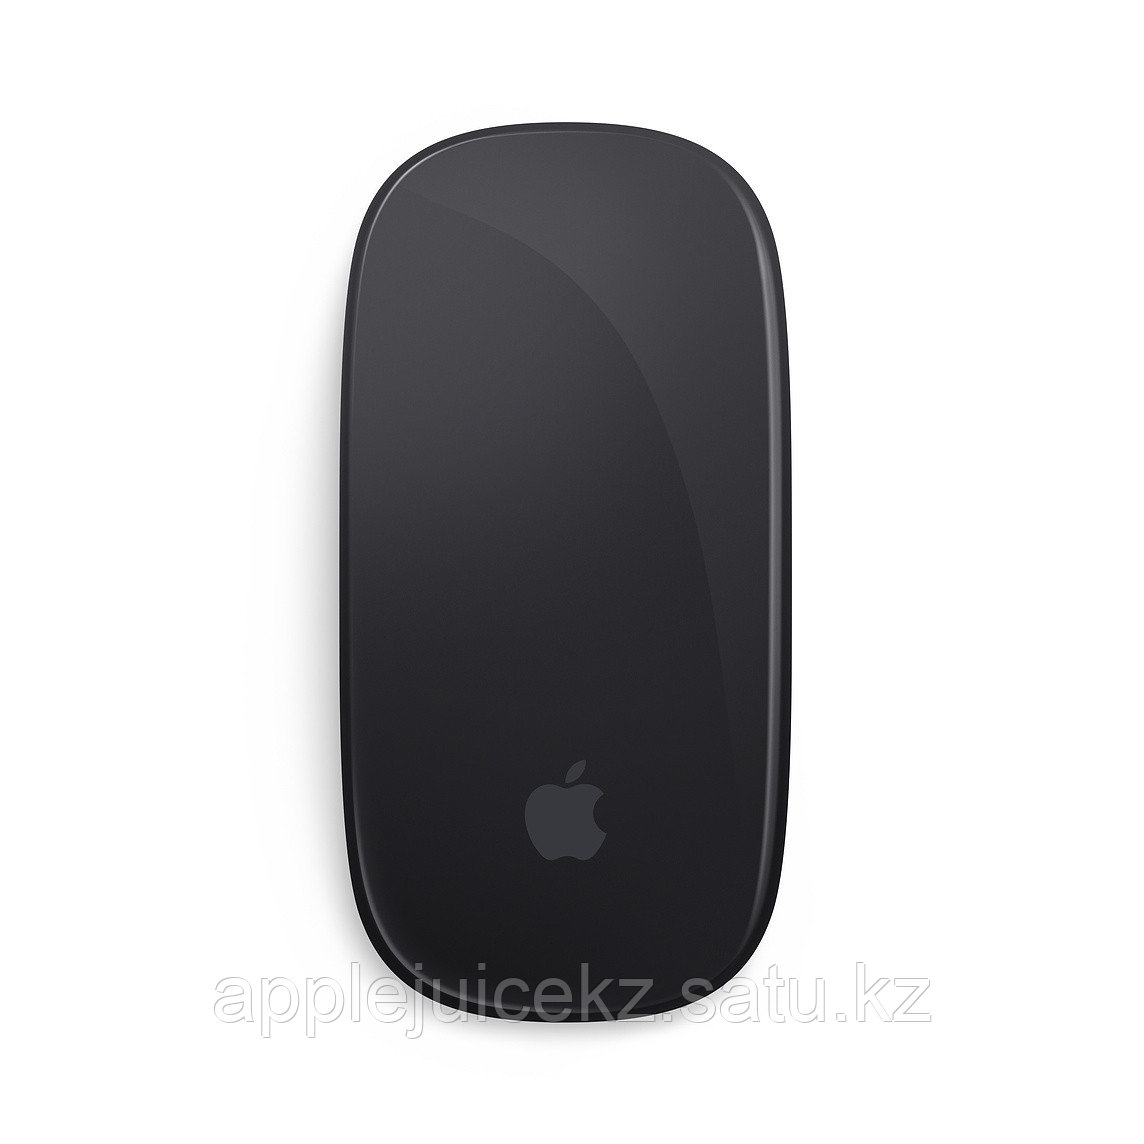 Magic Mouse 2 - Space Gray, фото 1